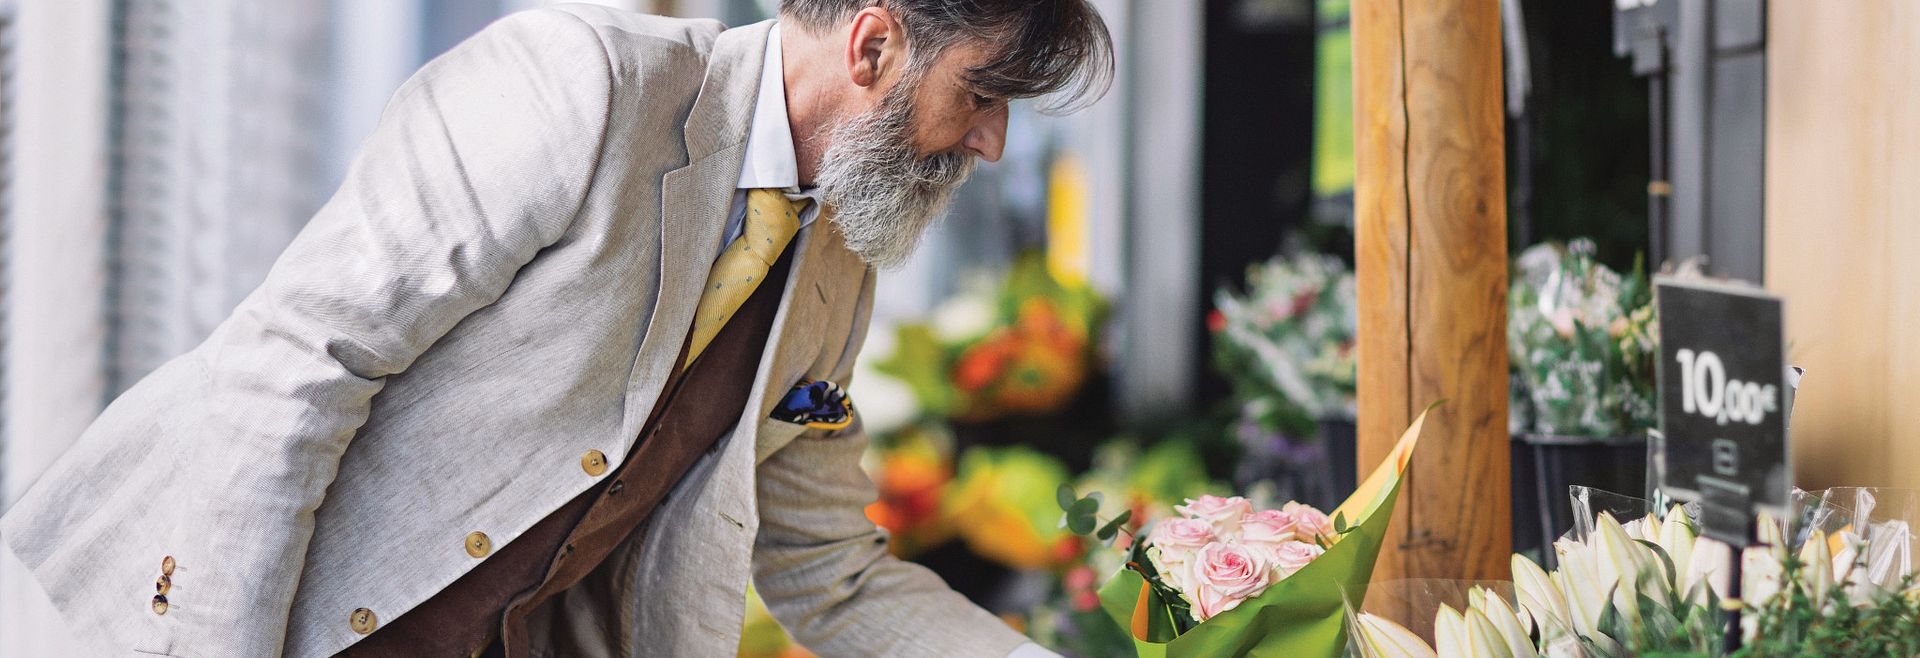 Man leaning over to choose a bouquet of flowers